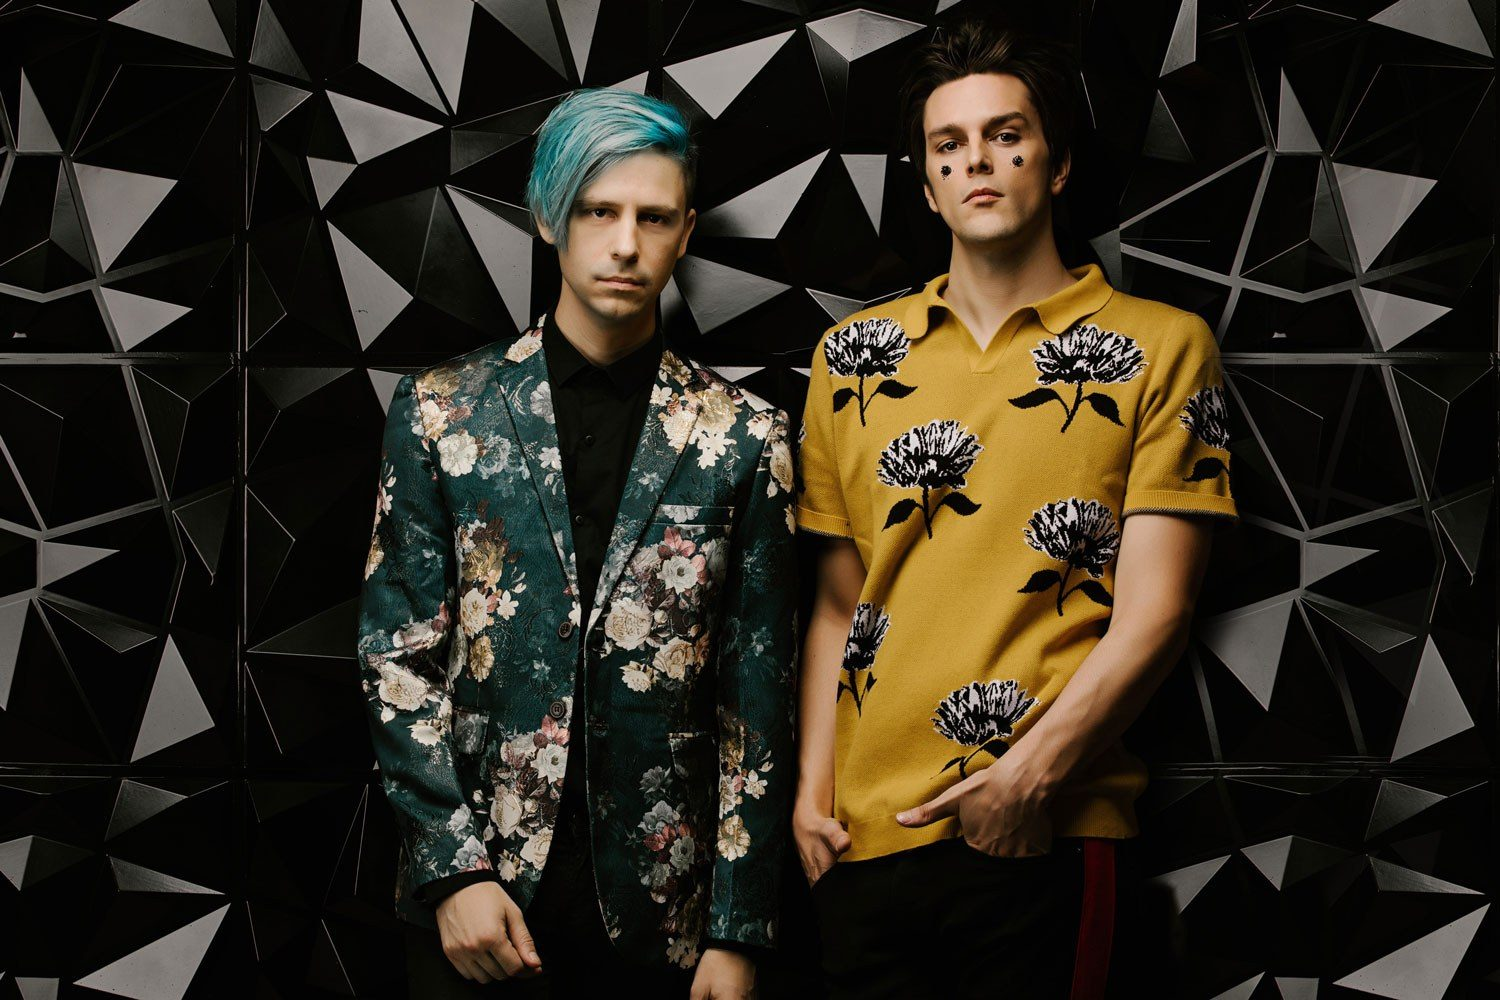 INTERVIEW: iDKHOW discuss their beginnings, working together, and more